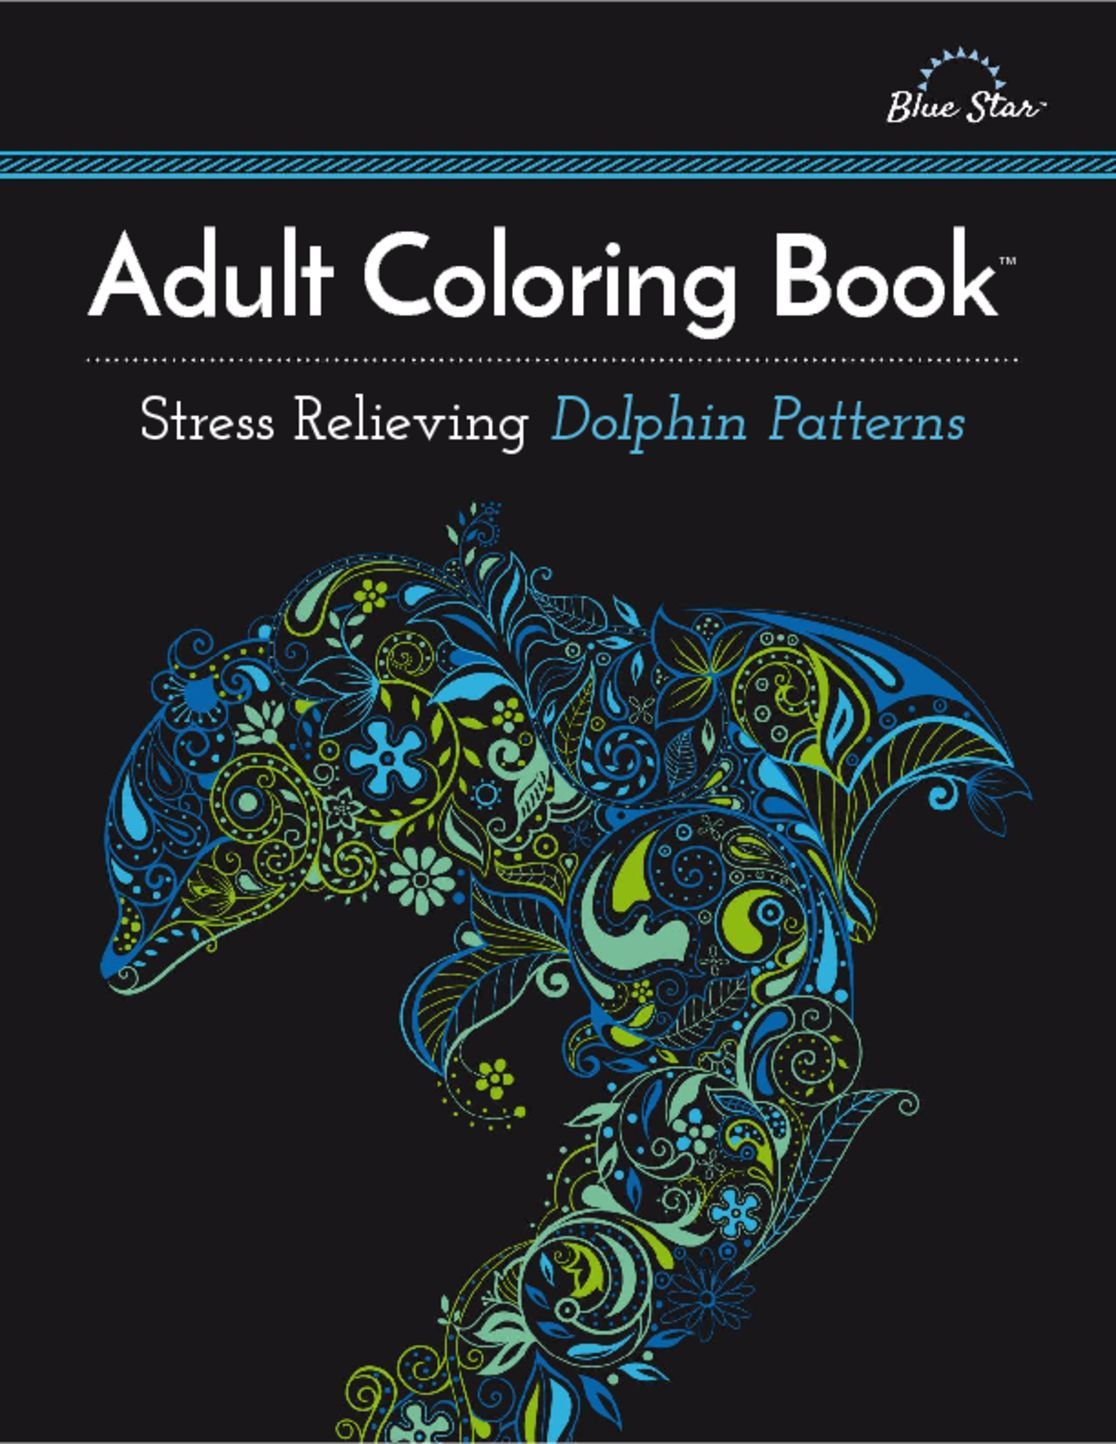 Adult Coloring Book Stress Relieving Dolphin Patterns Digital